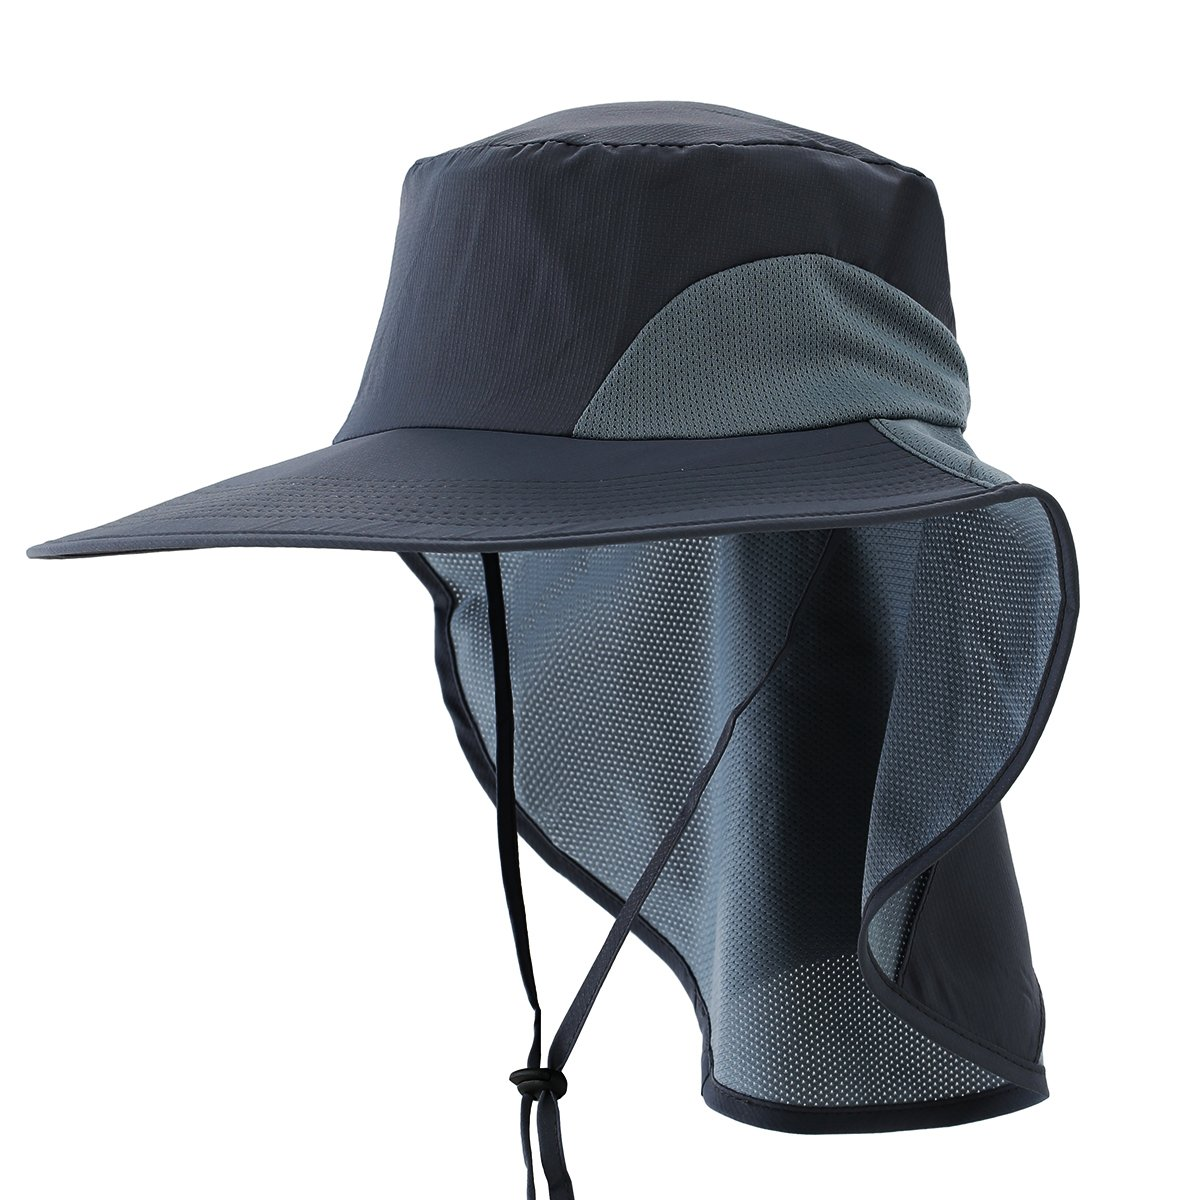 ba8bc7c4 Online Cheap wholesale Ksenia Unisex Wide Brim Outdoor Activities UV  Protecting Fishing Cap Sun Hats with Neck Flap Sun Hats Suppliers